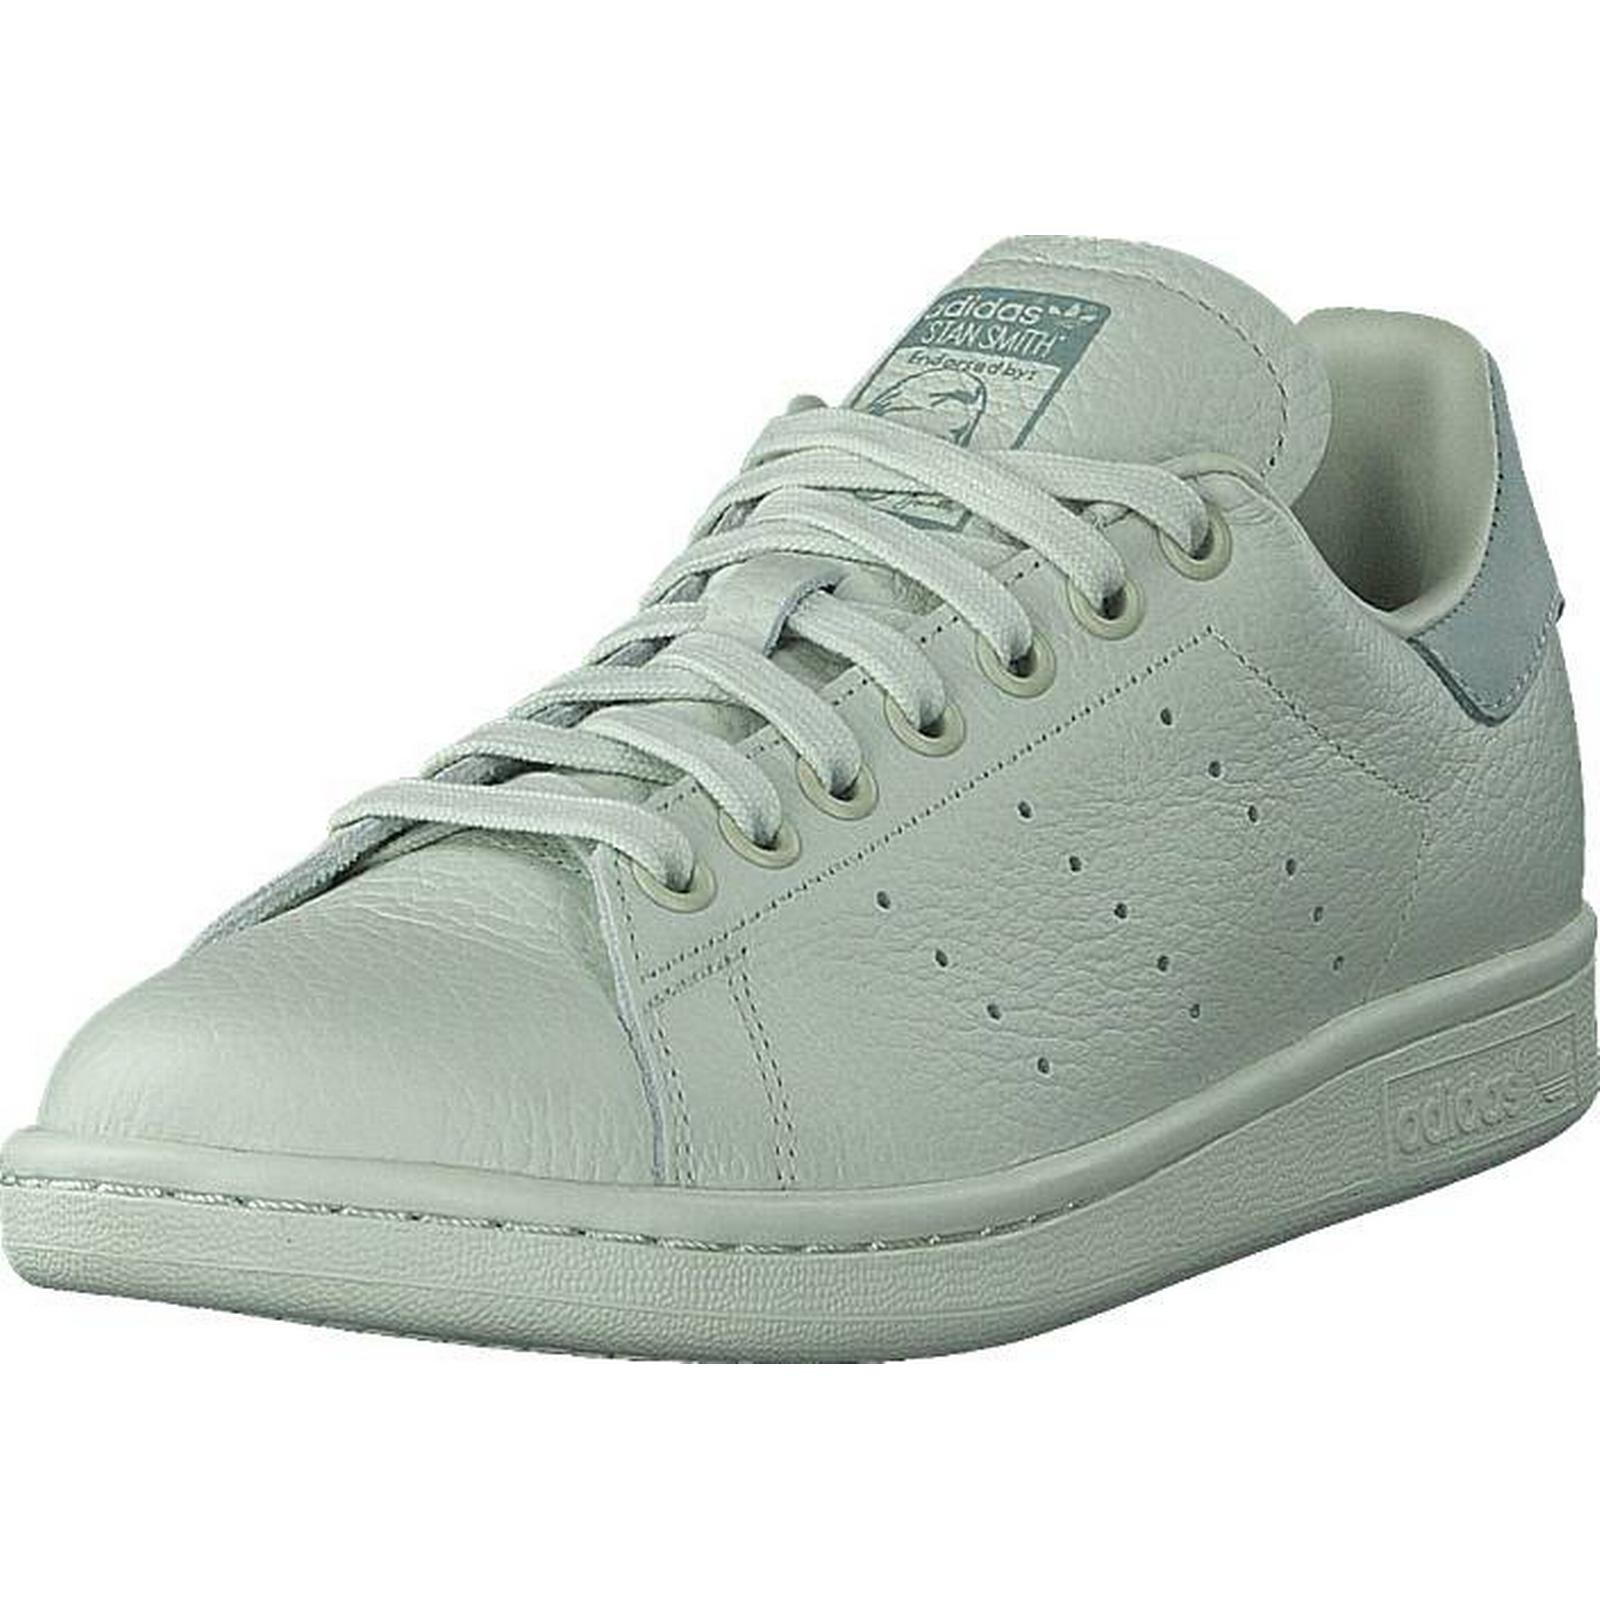 Adidas Originals Stan Smith Smith Stan Linen Green S17/Linen Green S1, Shoes, Trainers & Sport Shoes , Running Shoes, Grey, Female, 37 9dabf1